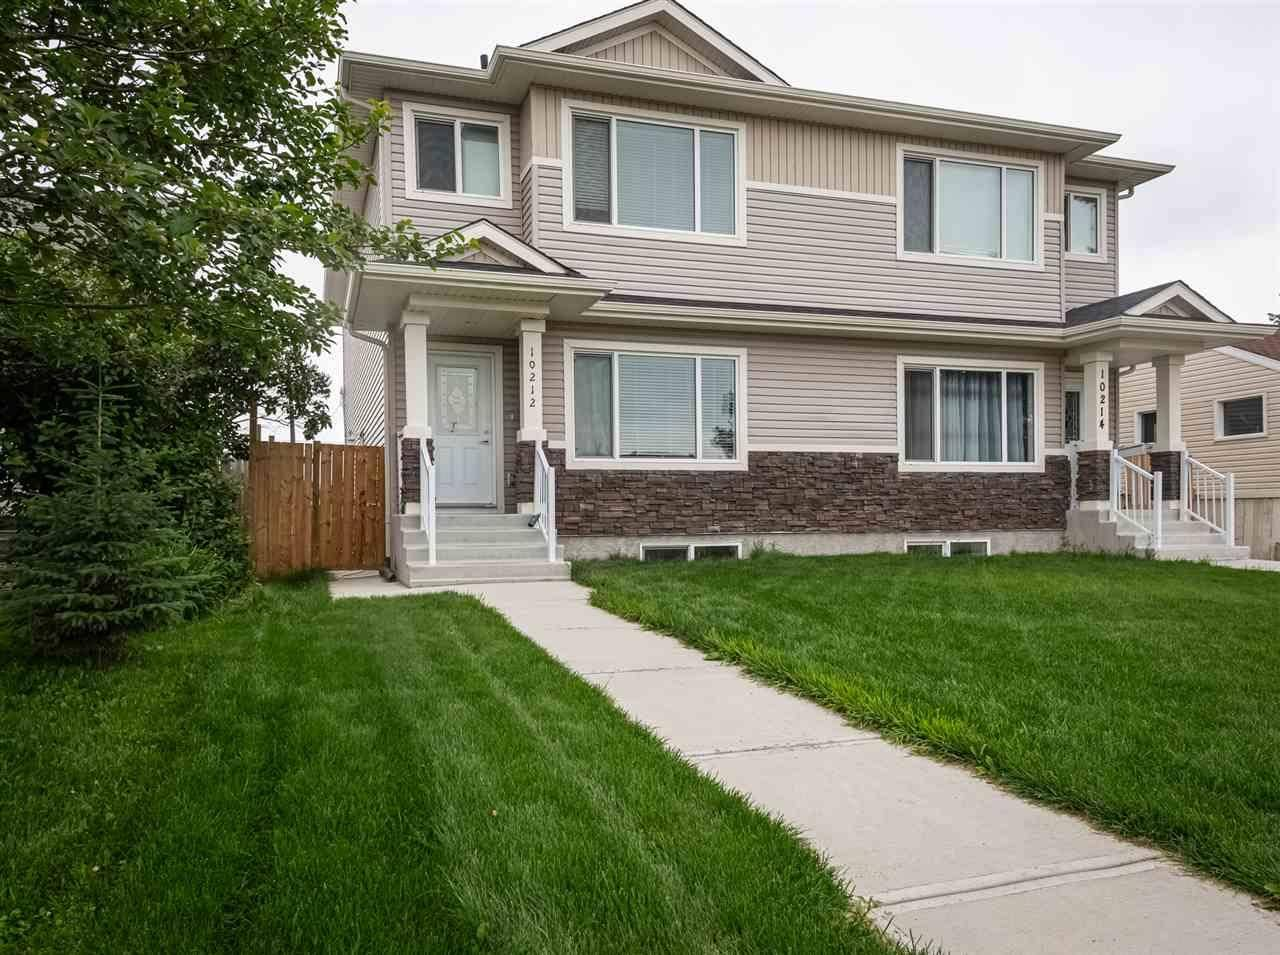 Townhouse for sale at 10212 157 St Nw Edmonton Alberta - MLS: E4178587